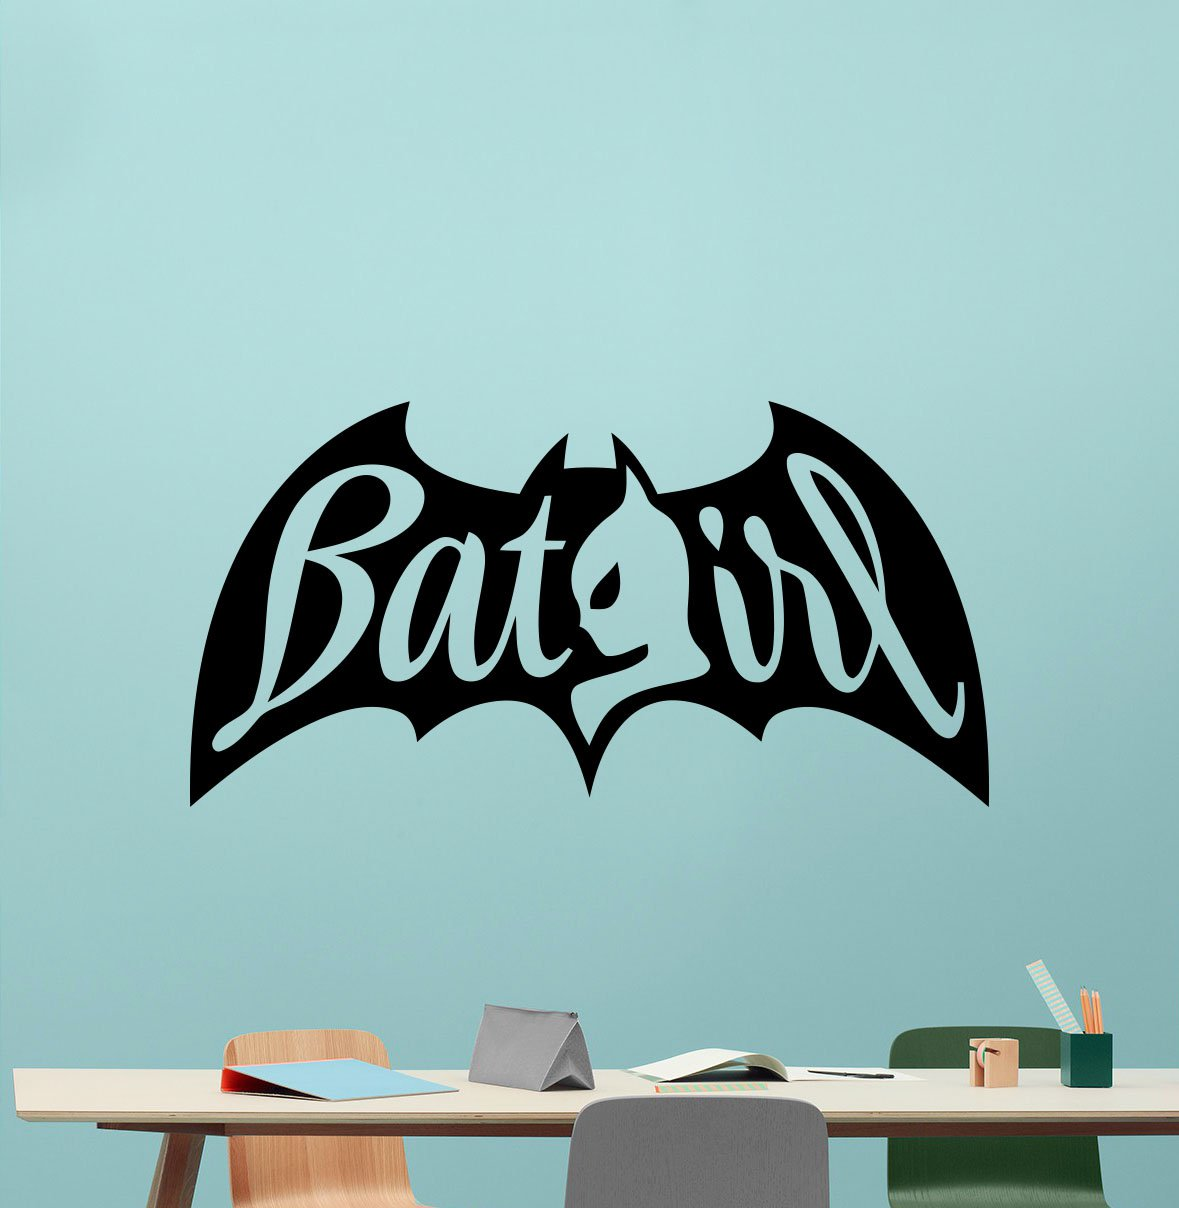 Amazon.com: Batgirl Wall Decal Marvel Batman Comics Superhero Vinyl Sticker  Wall Decor Cool Wall Art Kids Teen Girl Room Wall Design Modern Bedroom Wall  ...